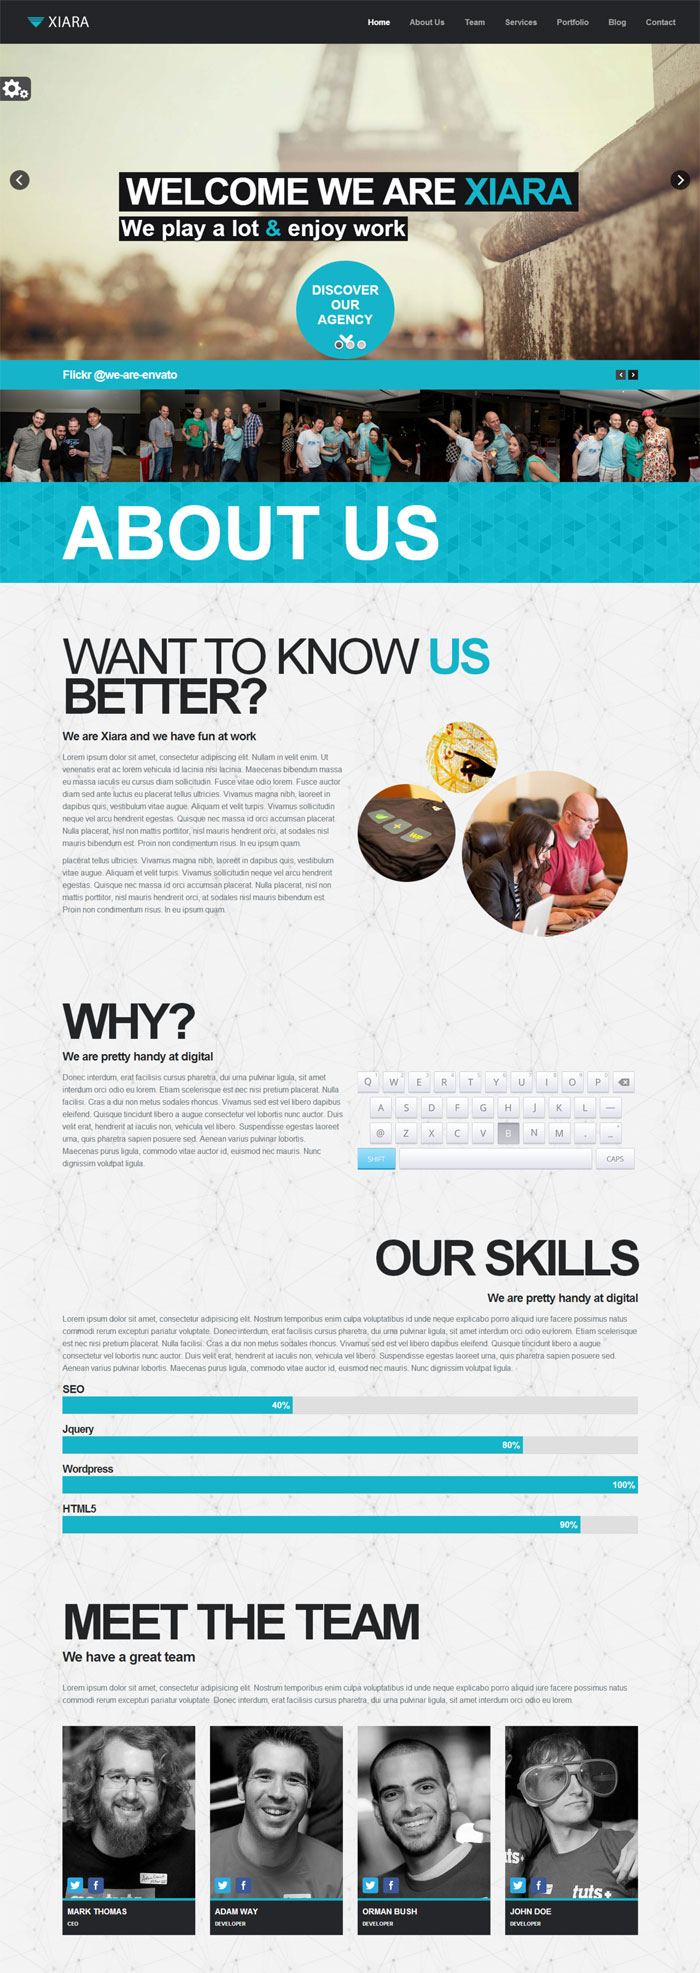 Onepage Flat Web Design Inspiration